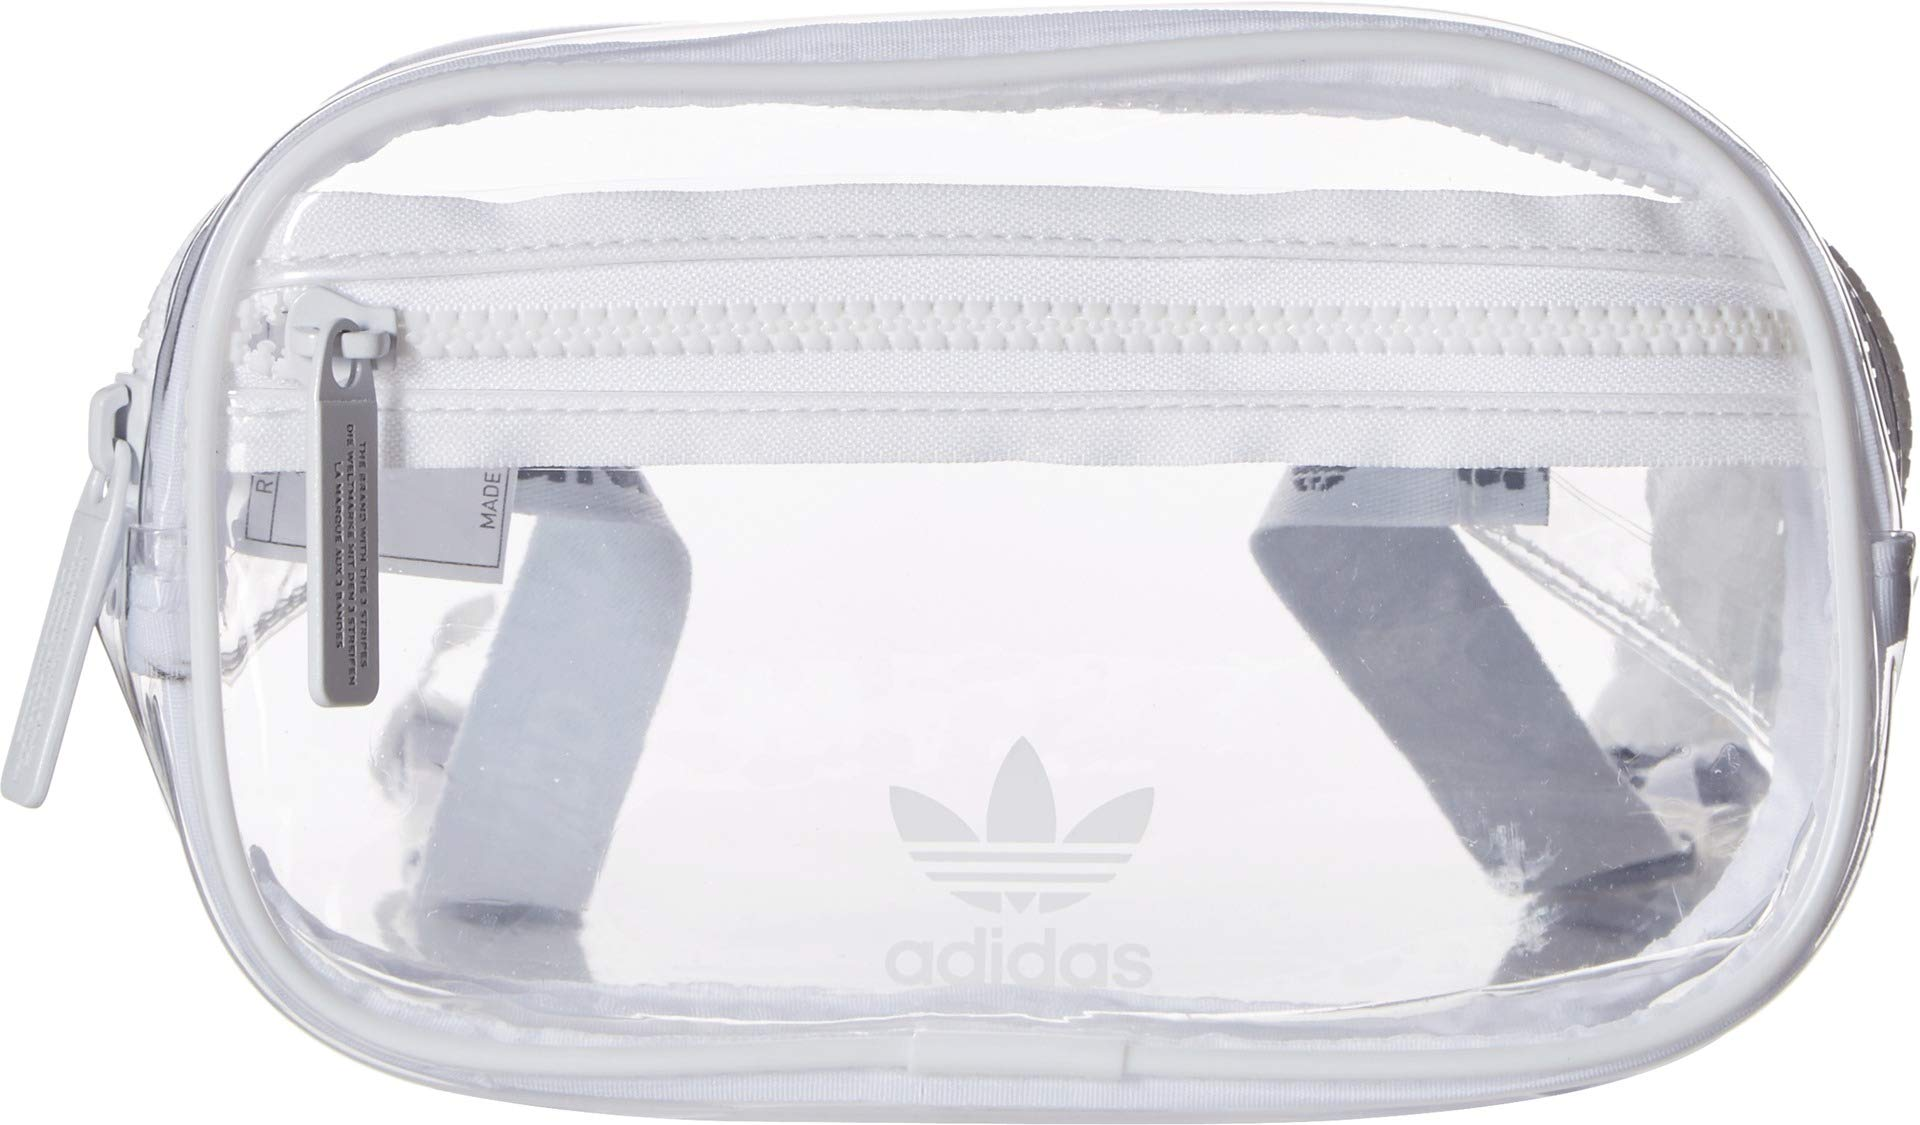 adidas Originals Unisex Clear Waist Pack, White, ONE SIZE by adidas Originals